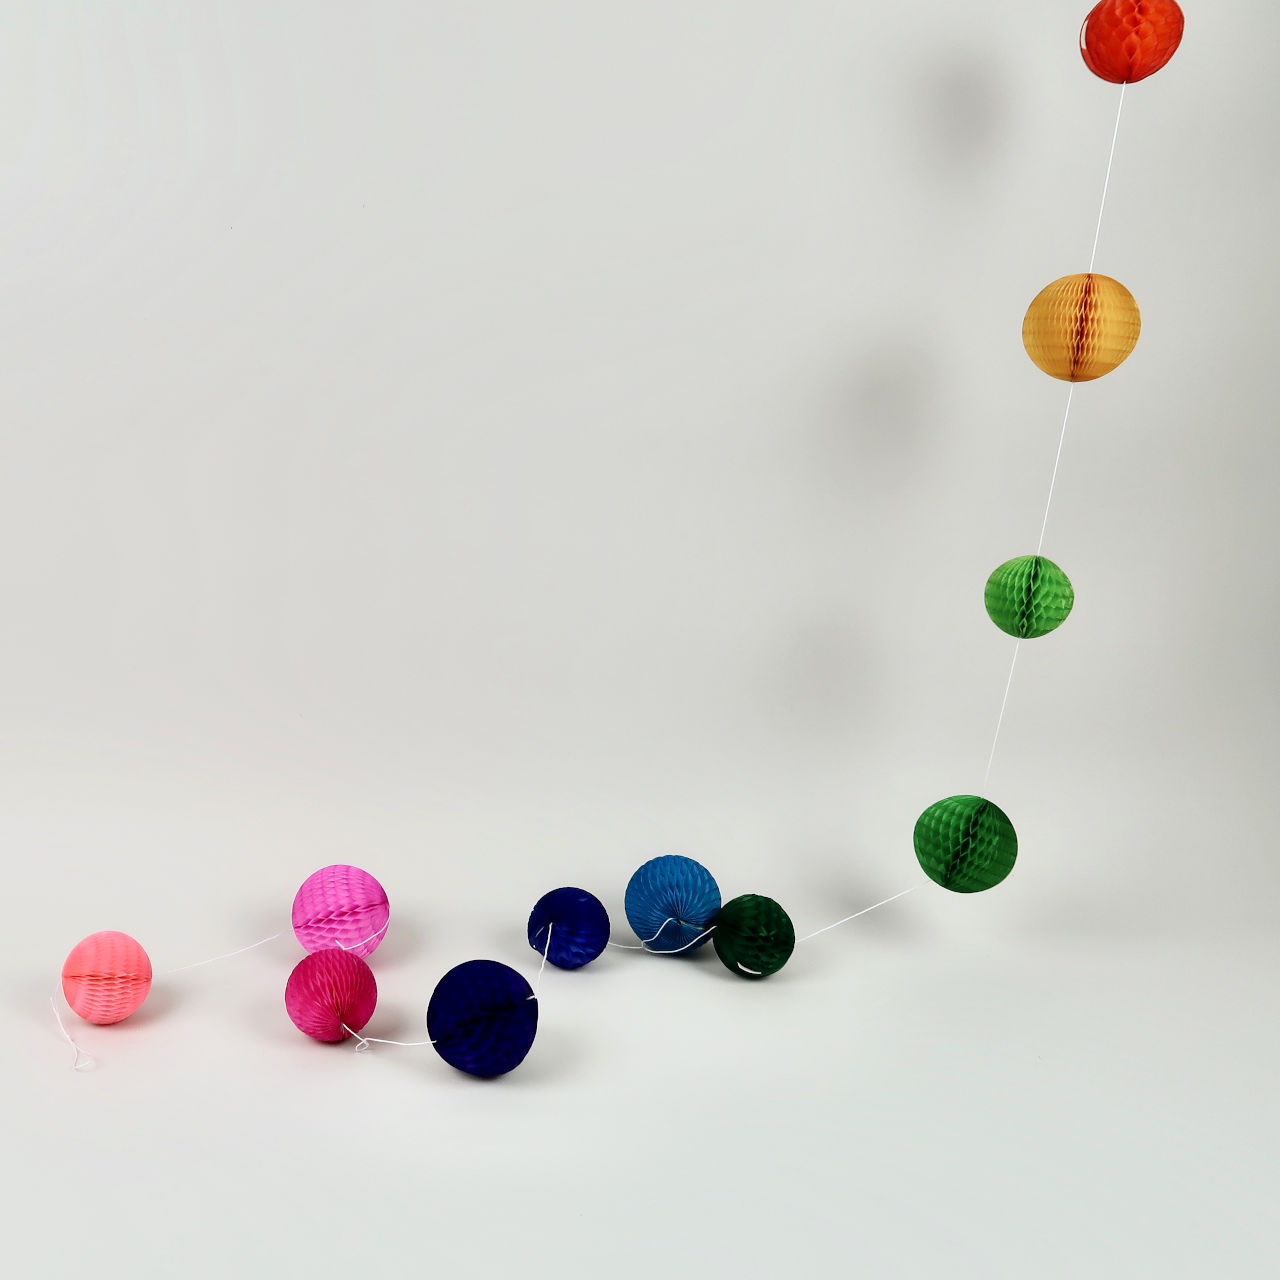 Honeycomb Ball Garland - 2m - Rainbow Bright